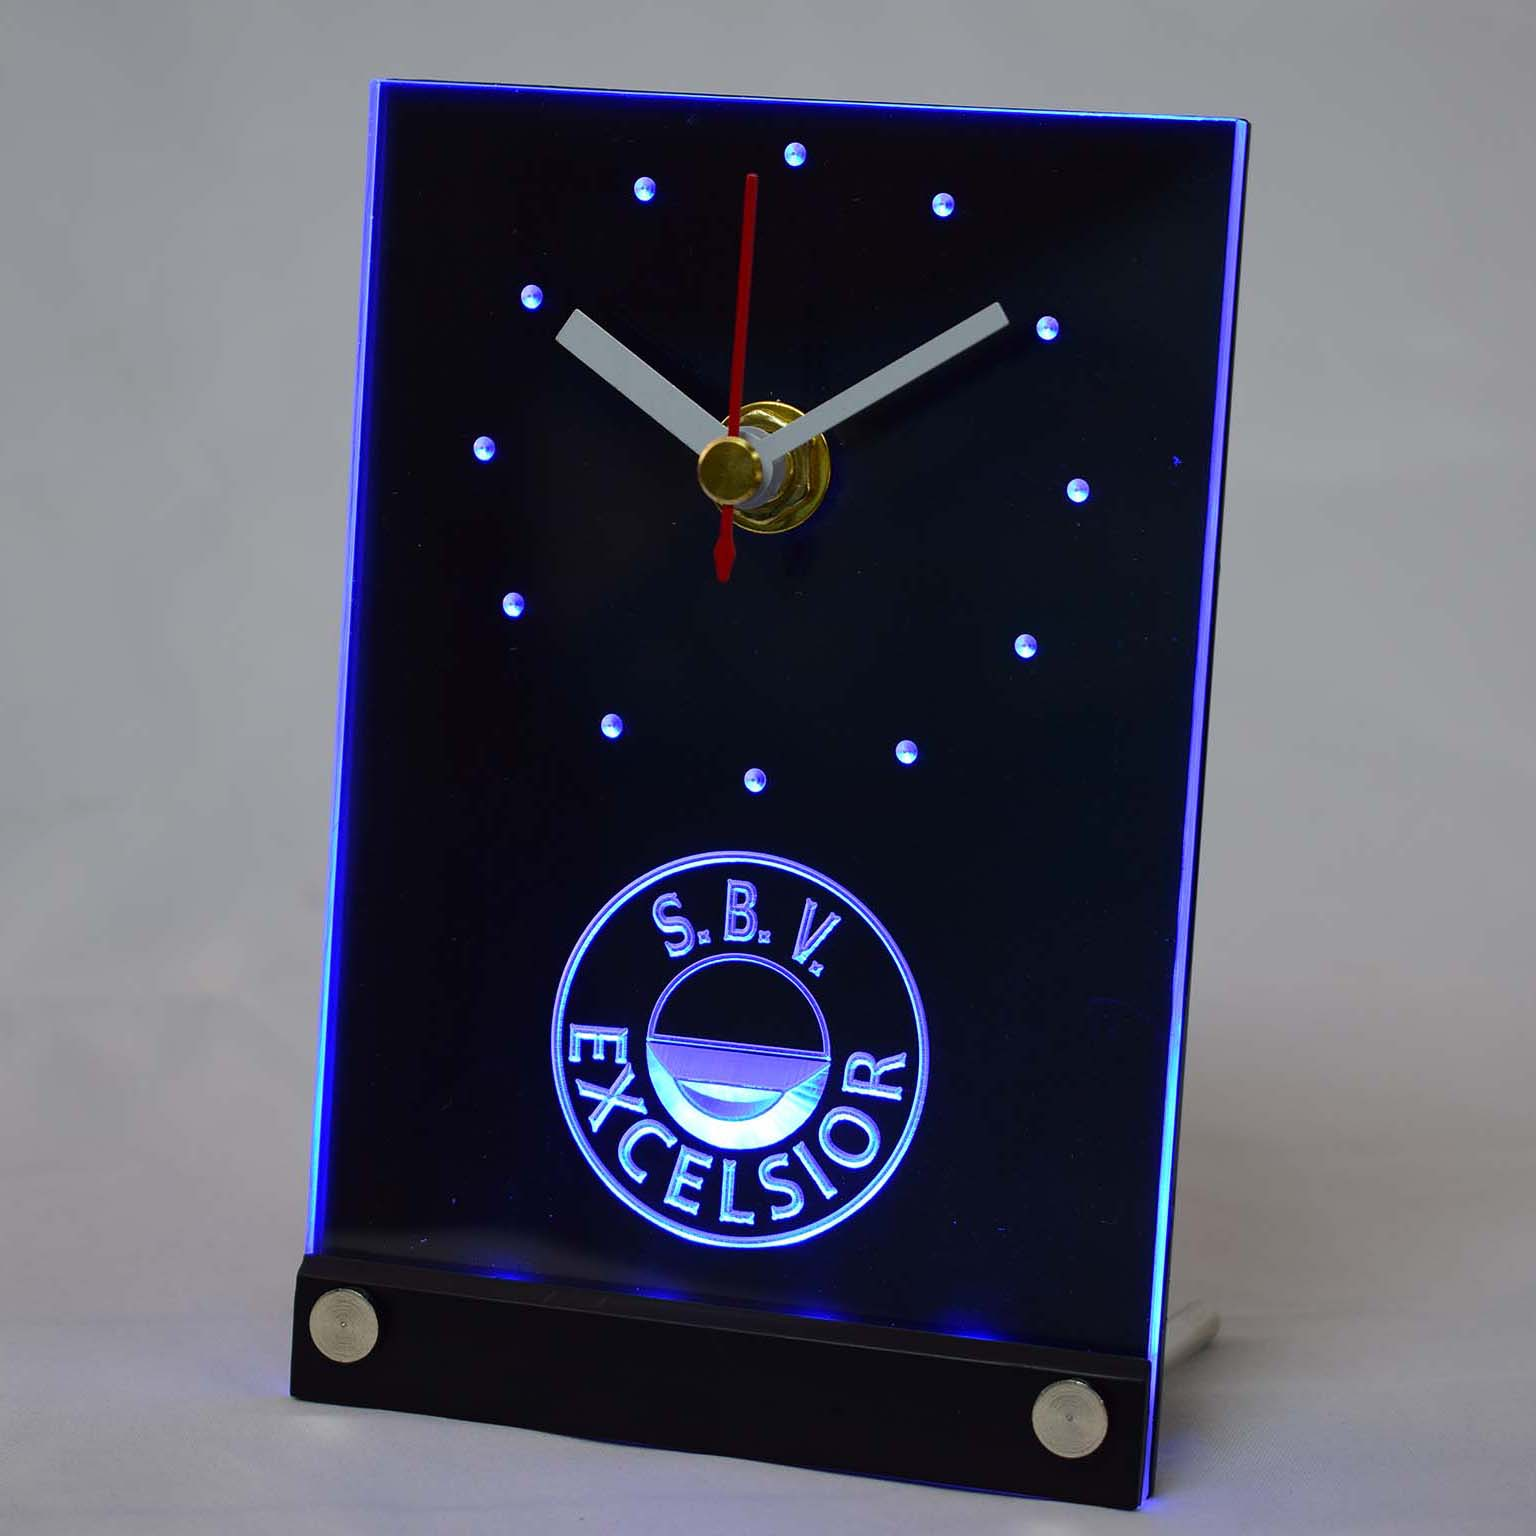 tnc1022 S.B.V. Excelsior Dutch Eredivisie Football 3D LED Table Desk Clock ...